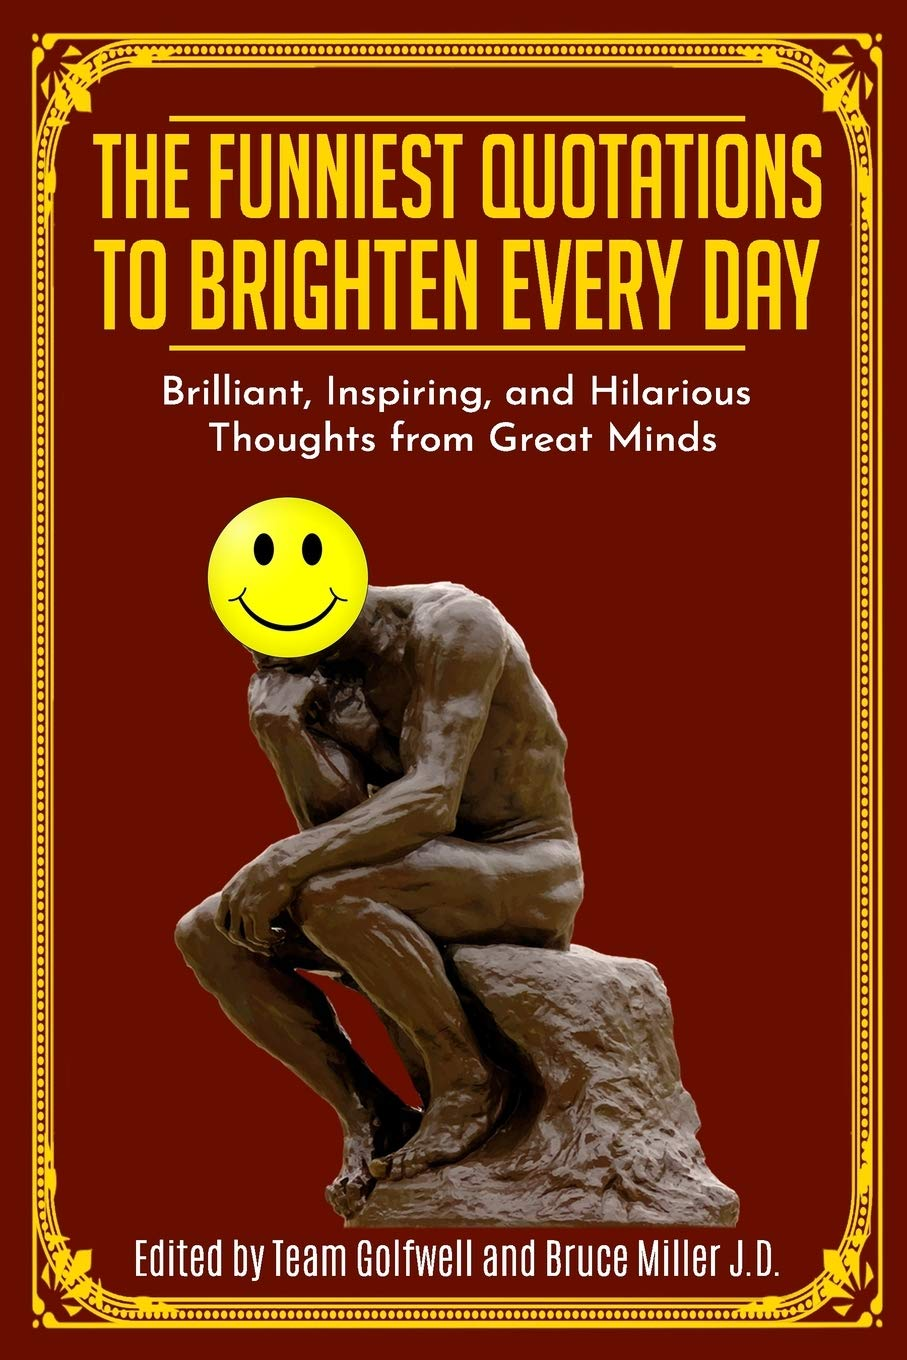 The Funniest Quotations To Brighten Every Day Brilliant Inspiring And Hilarious Thoughts From Great Minds Quotes To Inspire Golfwell Team Miller J D Bruce 9781710441413 Amazon Com Books